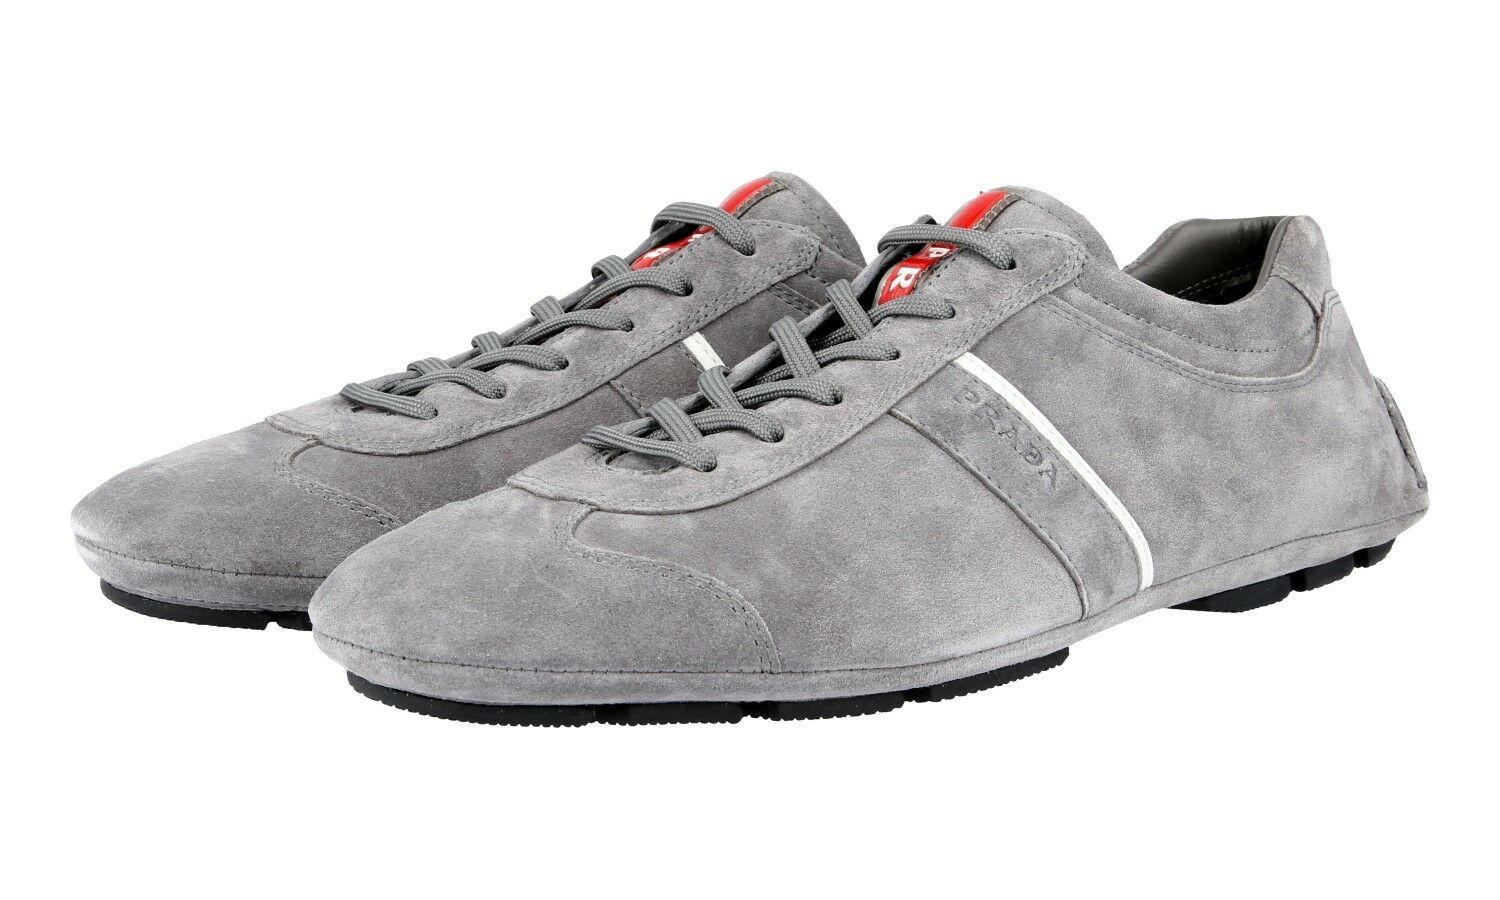 PRADA MONTE CARLO SNEAKERS SHOES 4E2599 GREY SUEDE NEW US 7.5